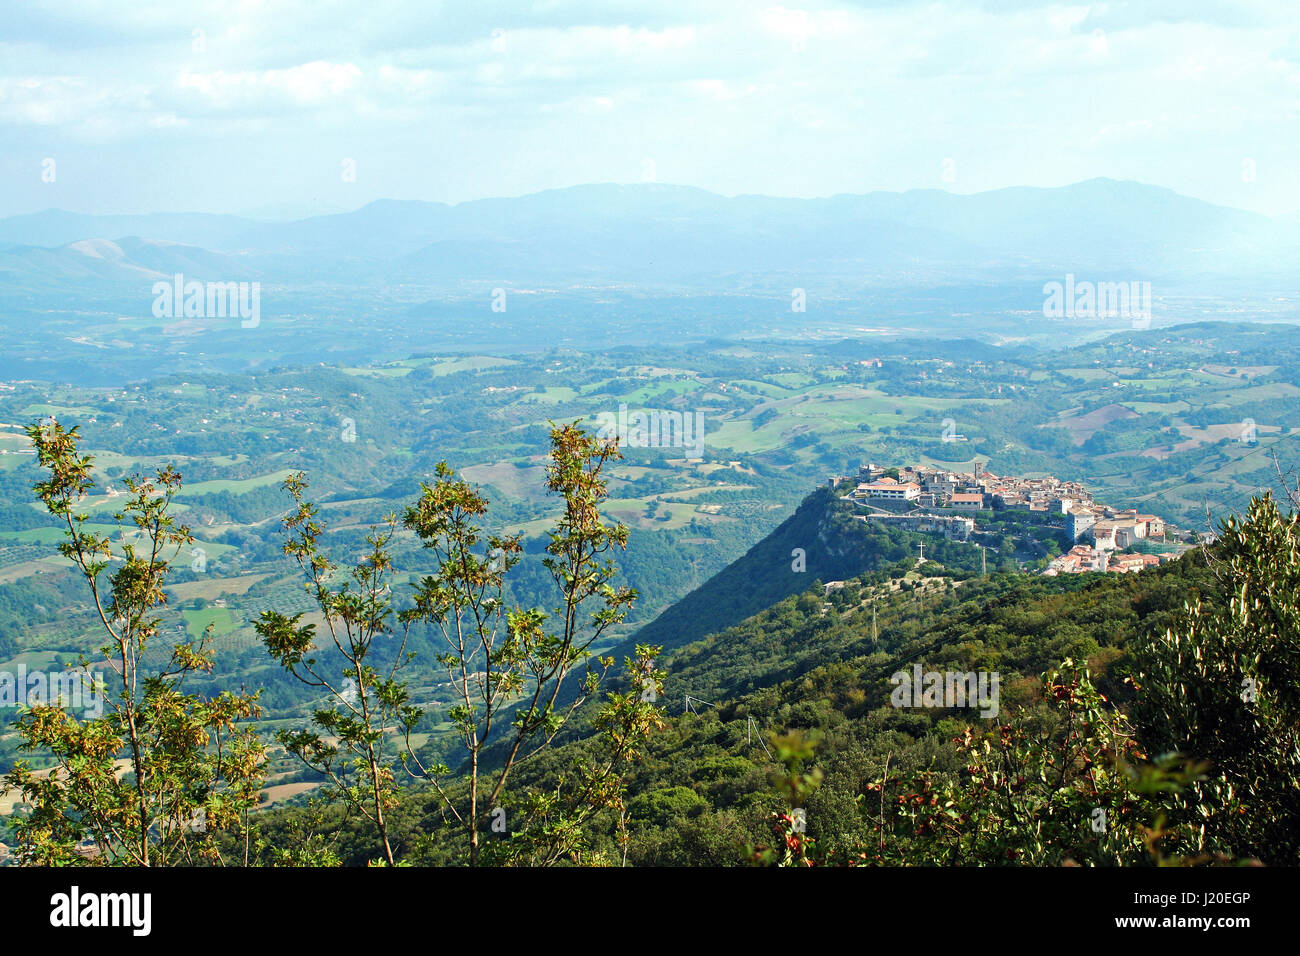 Landscape of St.Oreste from the summit of Mount Soratte in Italy - Stock Image